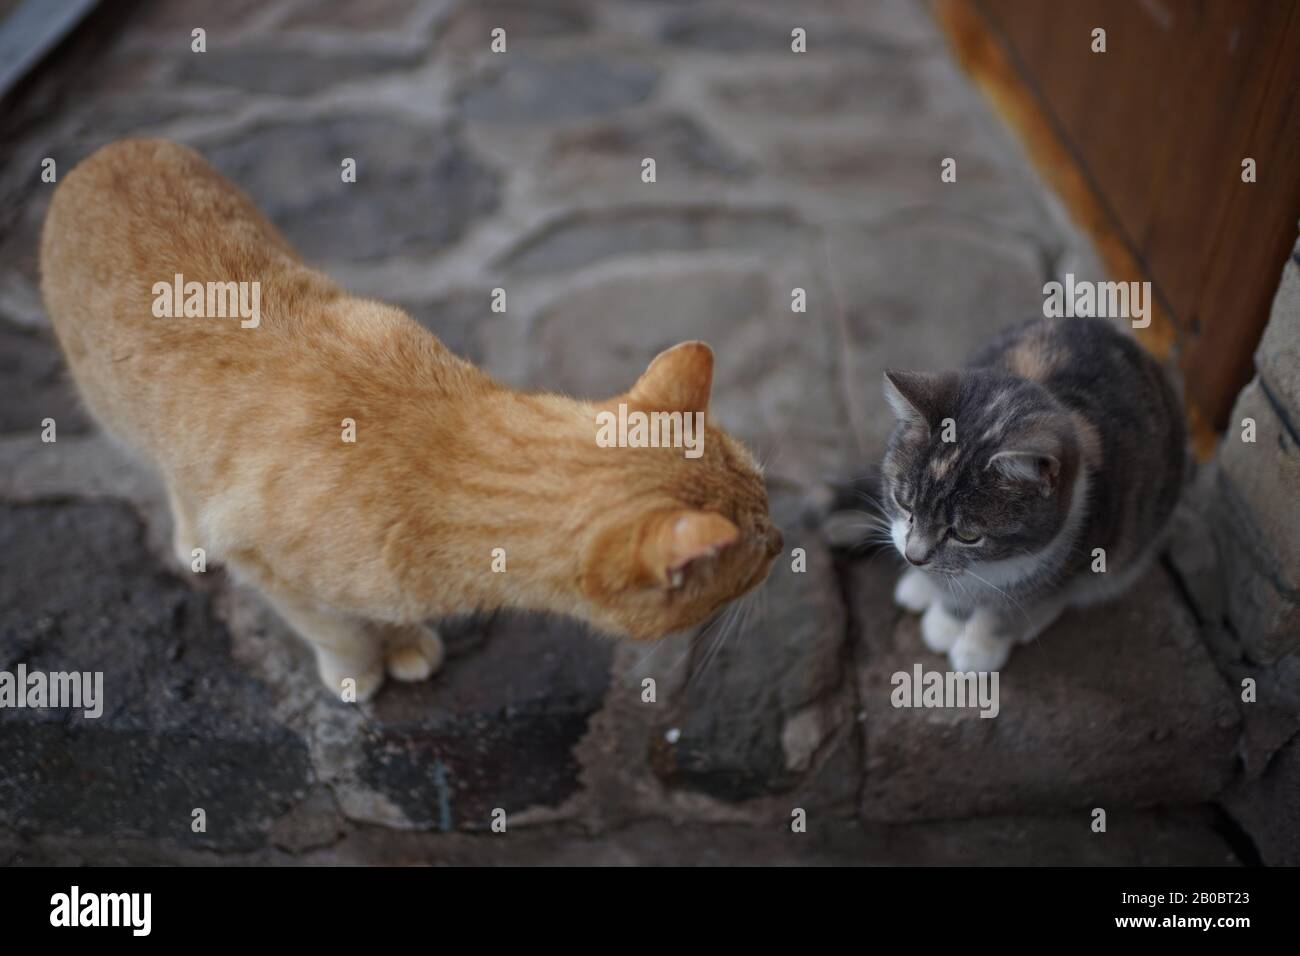 Communication of two cats in the yard. Ginger cat and young grey kitty kitten. Stock Photo